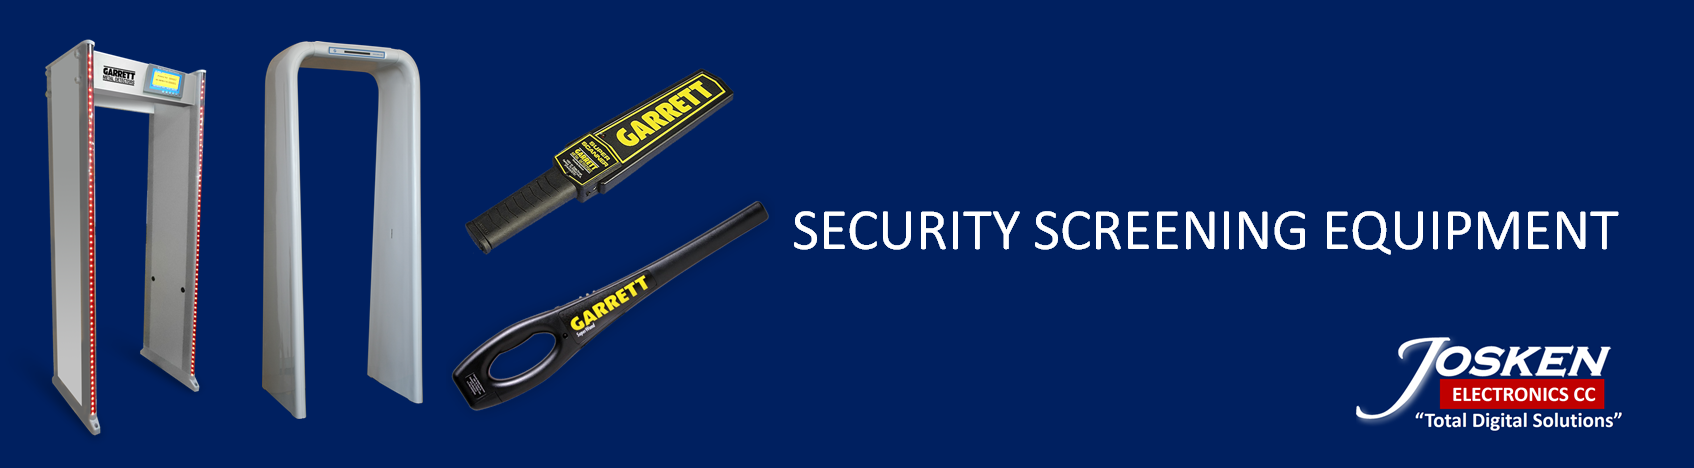 SECURITY SCREENING EQUIPMENT BANNER